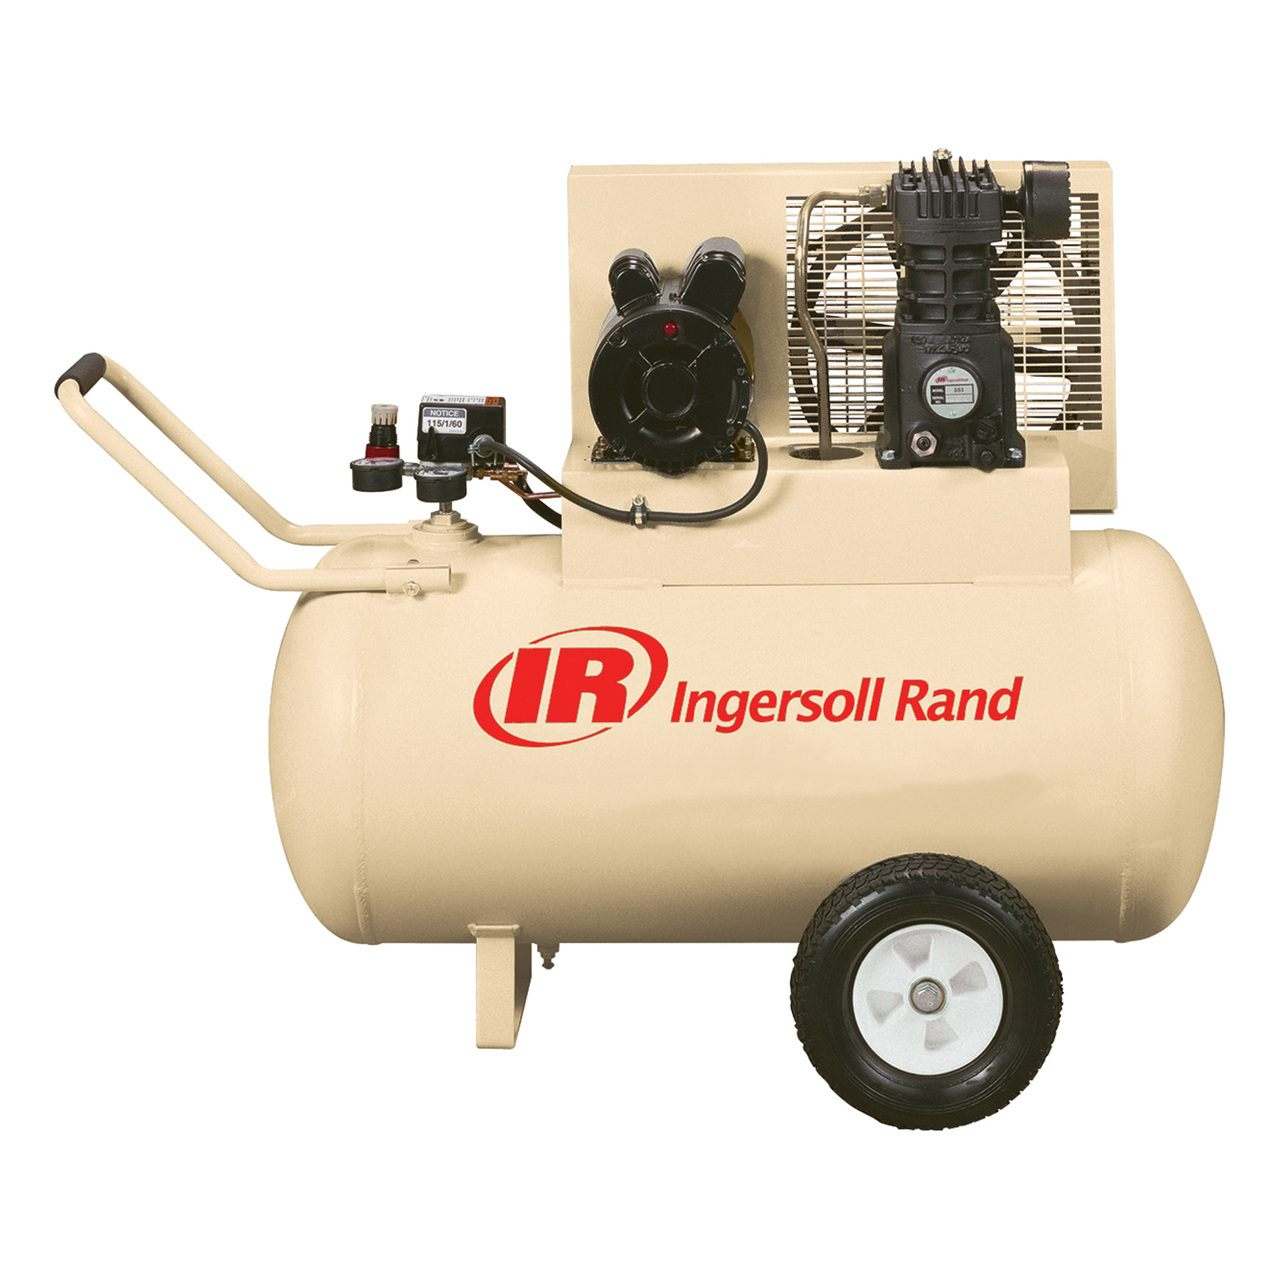 Ingersoll Rand Ss3F2-Gm 2 Hp 30 Gal Horizontal Air Compressor